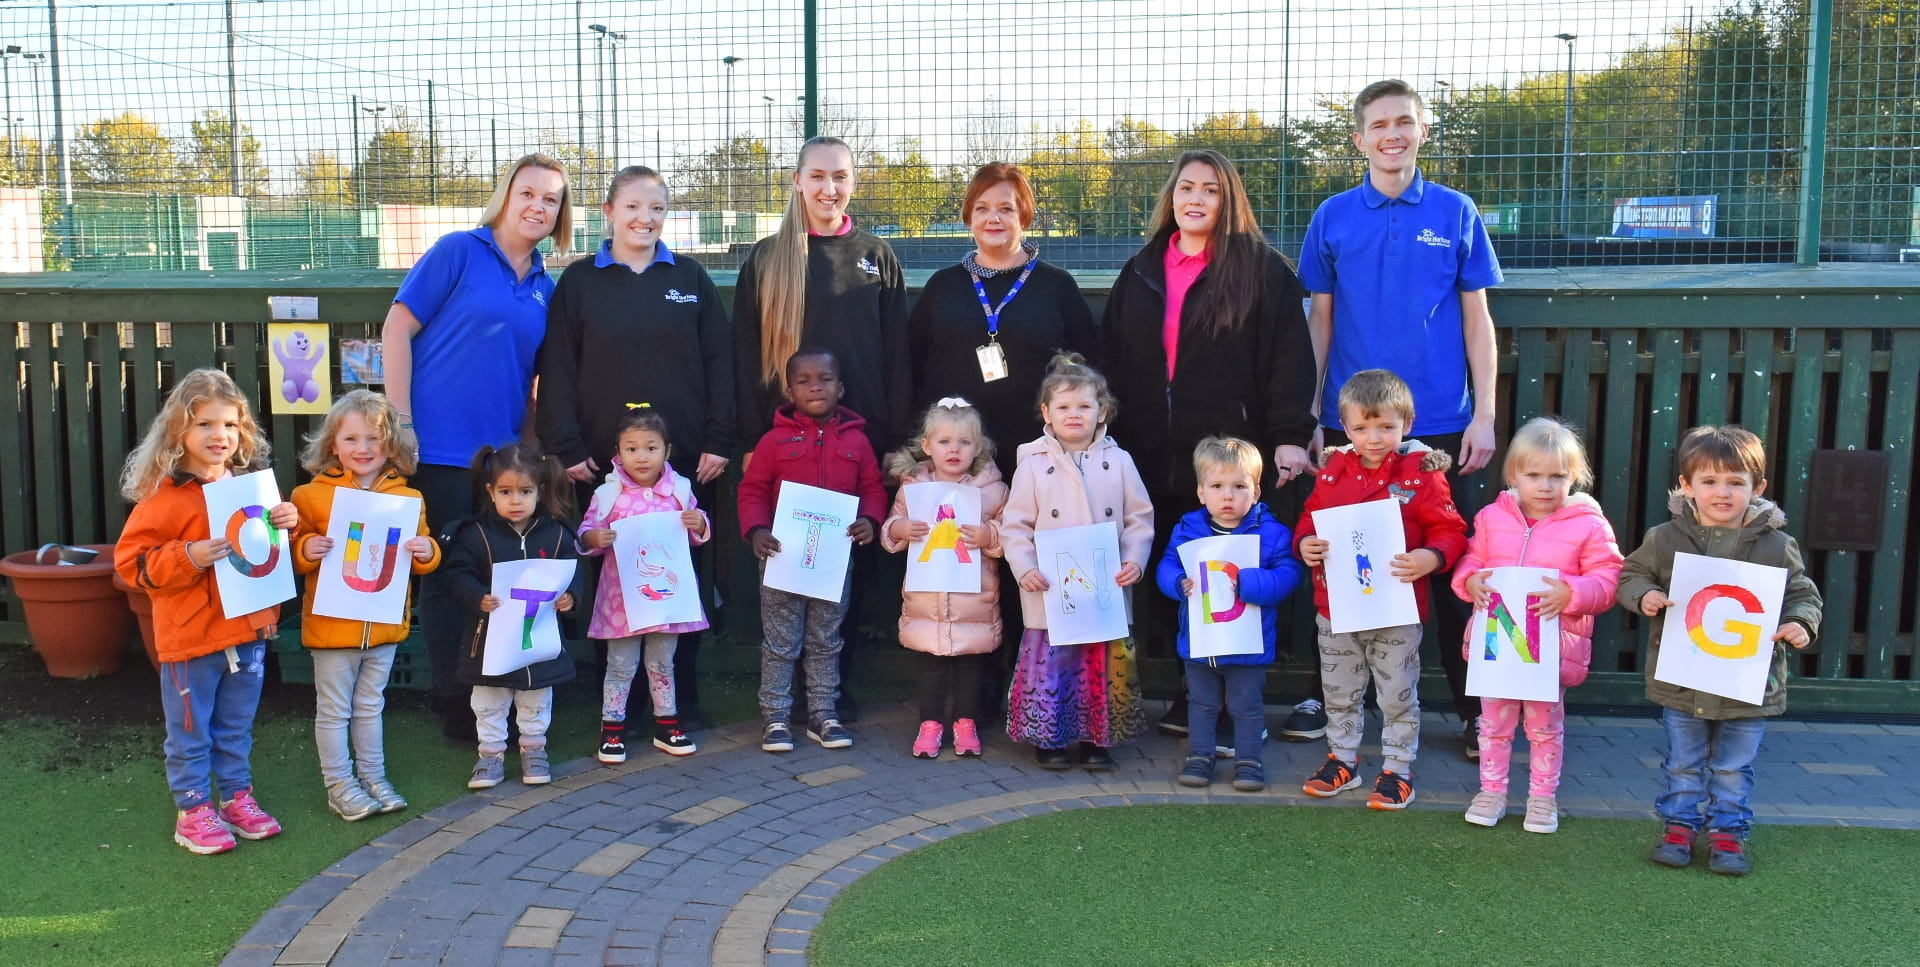 Sutton nursery receives 'Outstanding' rating from Ofsted